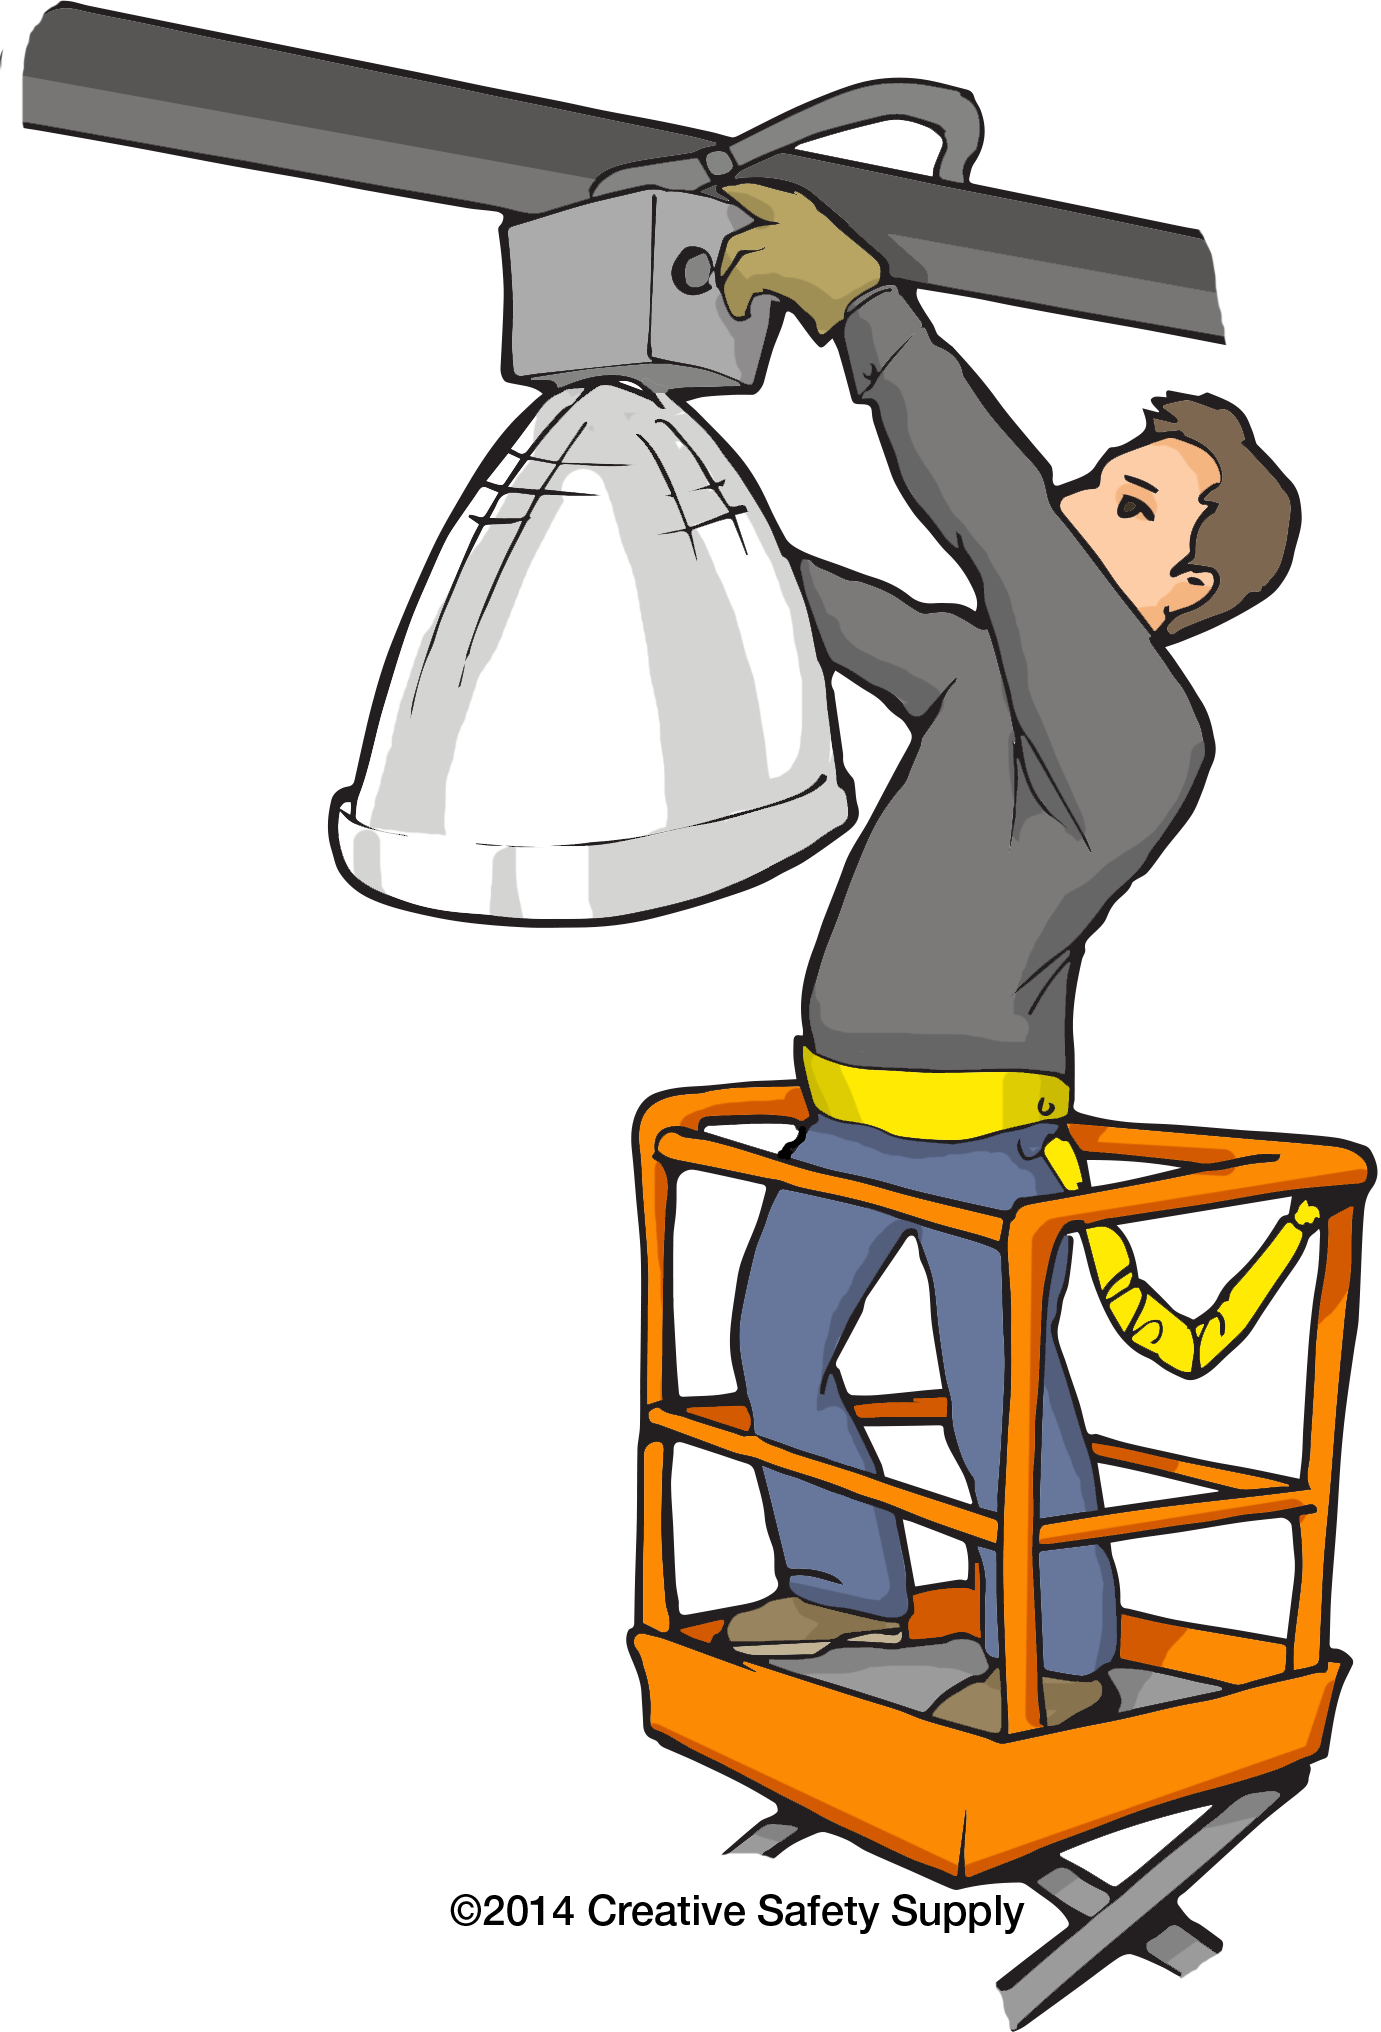 Struck by incidents ways. Ladder clipart unsafe